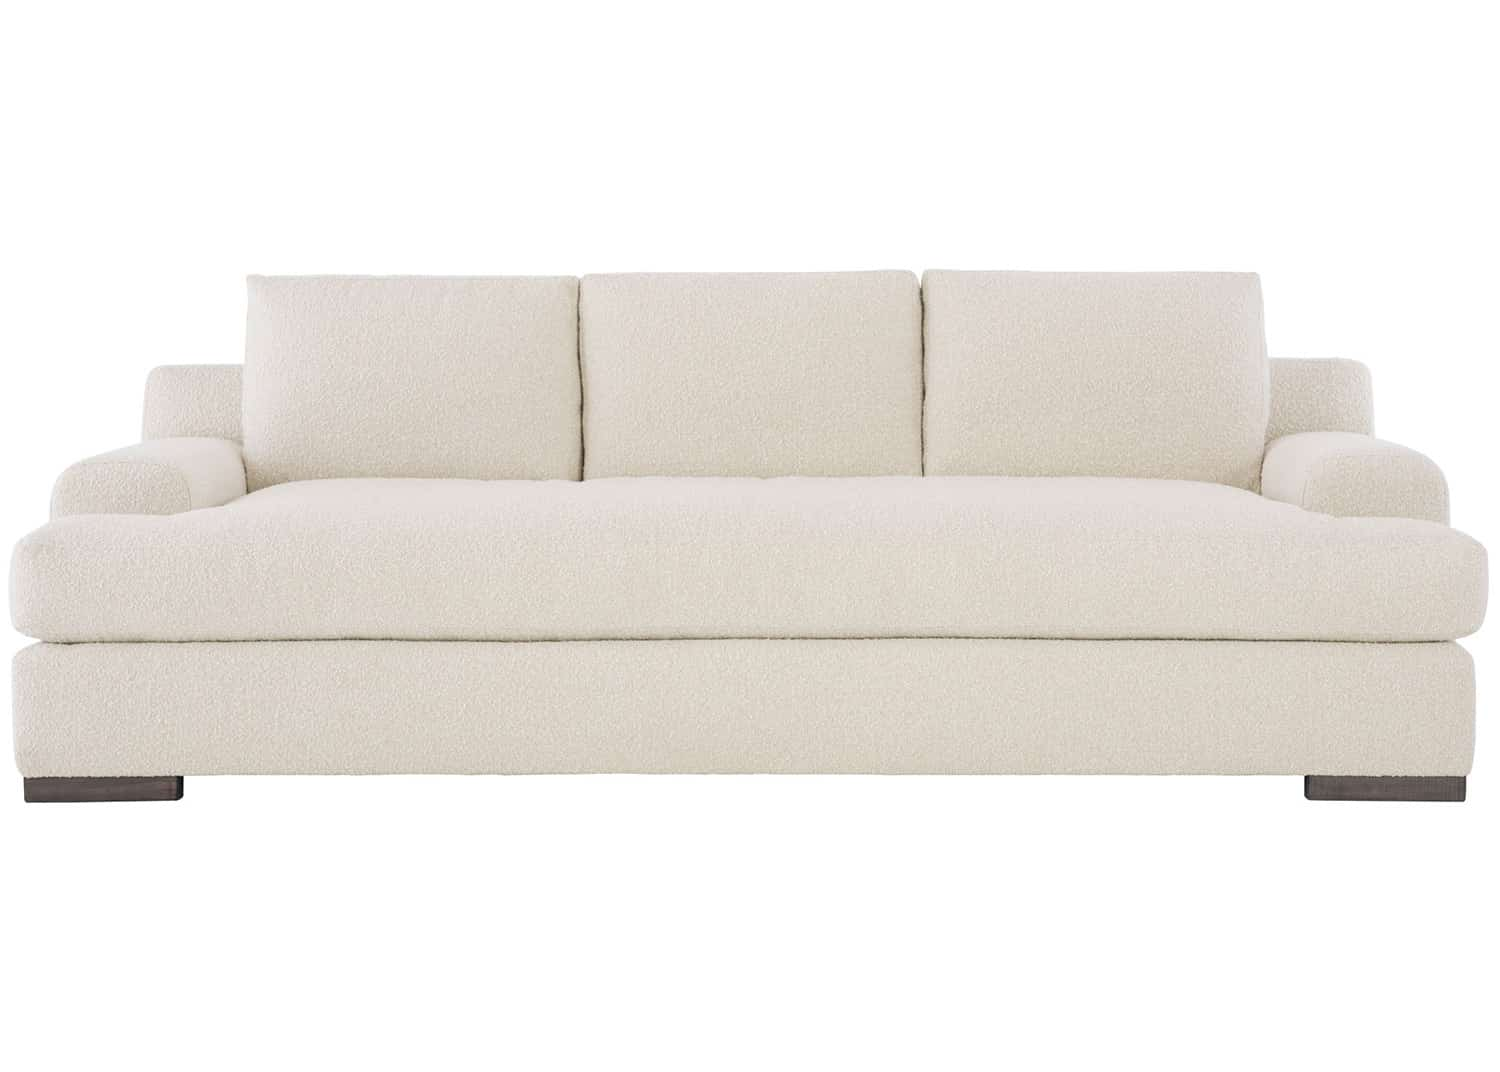 sleek contemporary sofa